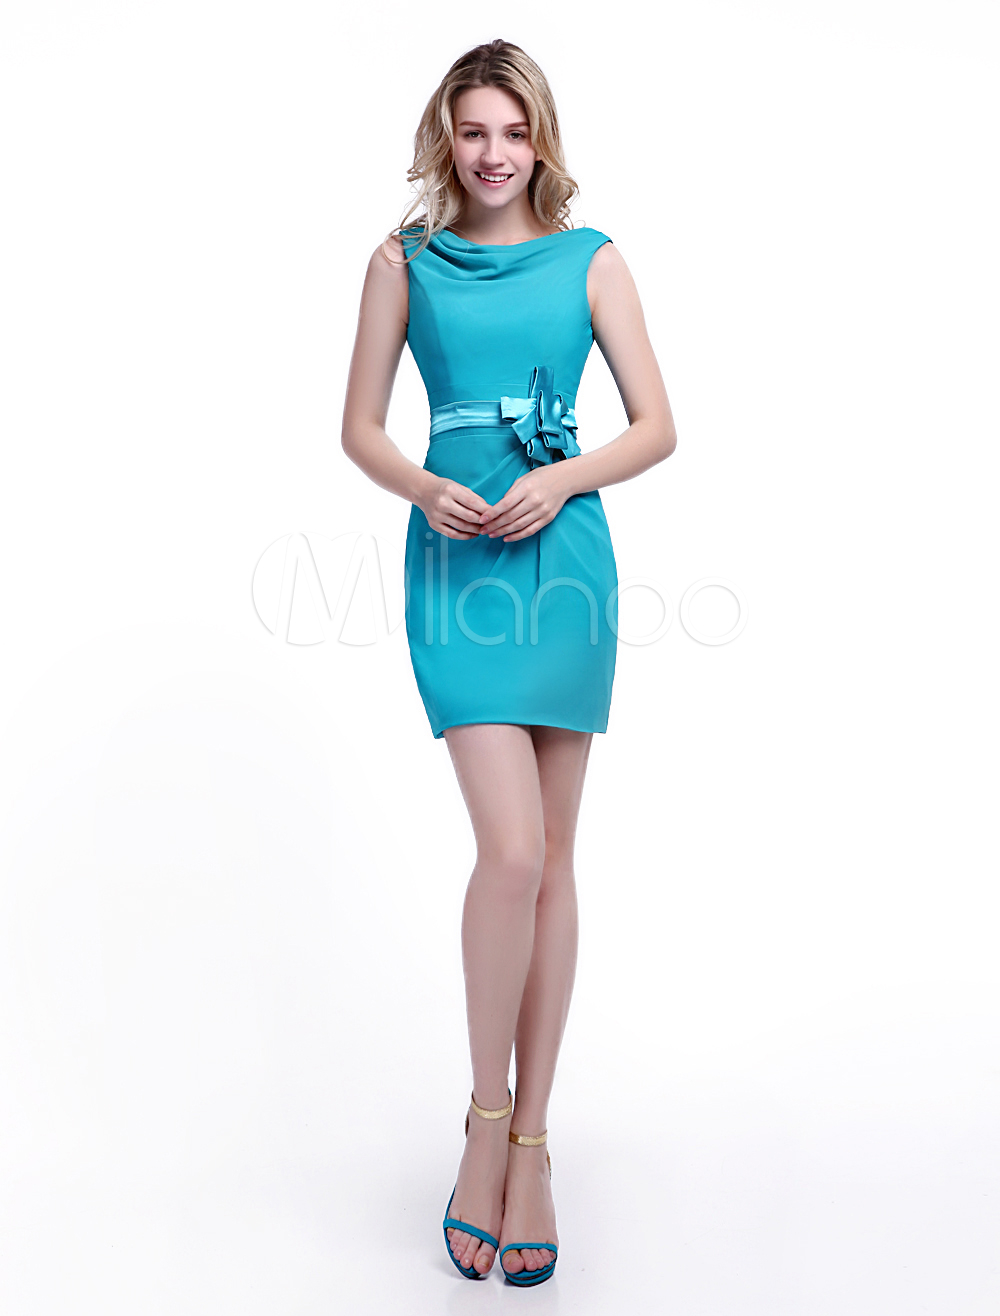 Buy Turquoise Bridesmaid Dress Satin Bow Sash Cocktail Dress Cowl Neck Sleeveless Sheath Short Party Dress Wedding Guest Dress Milanoo for $99.99 in Milanoo store